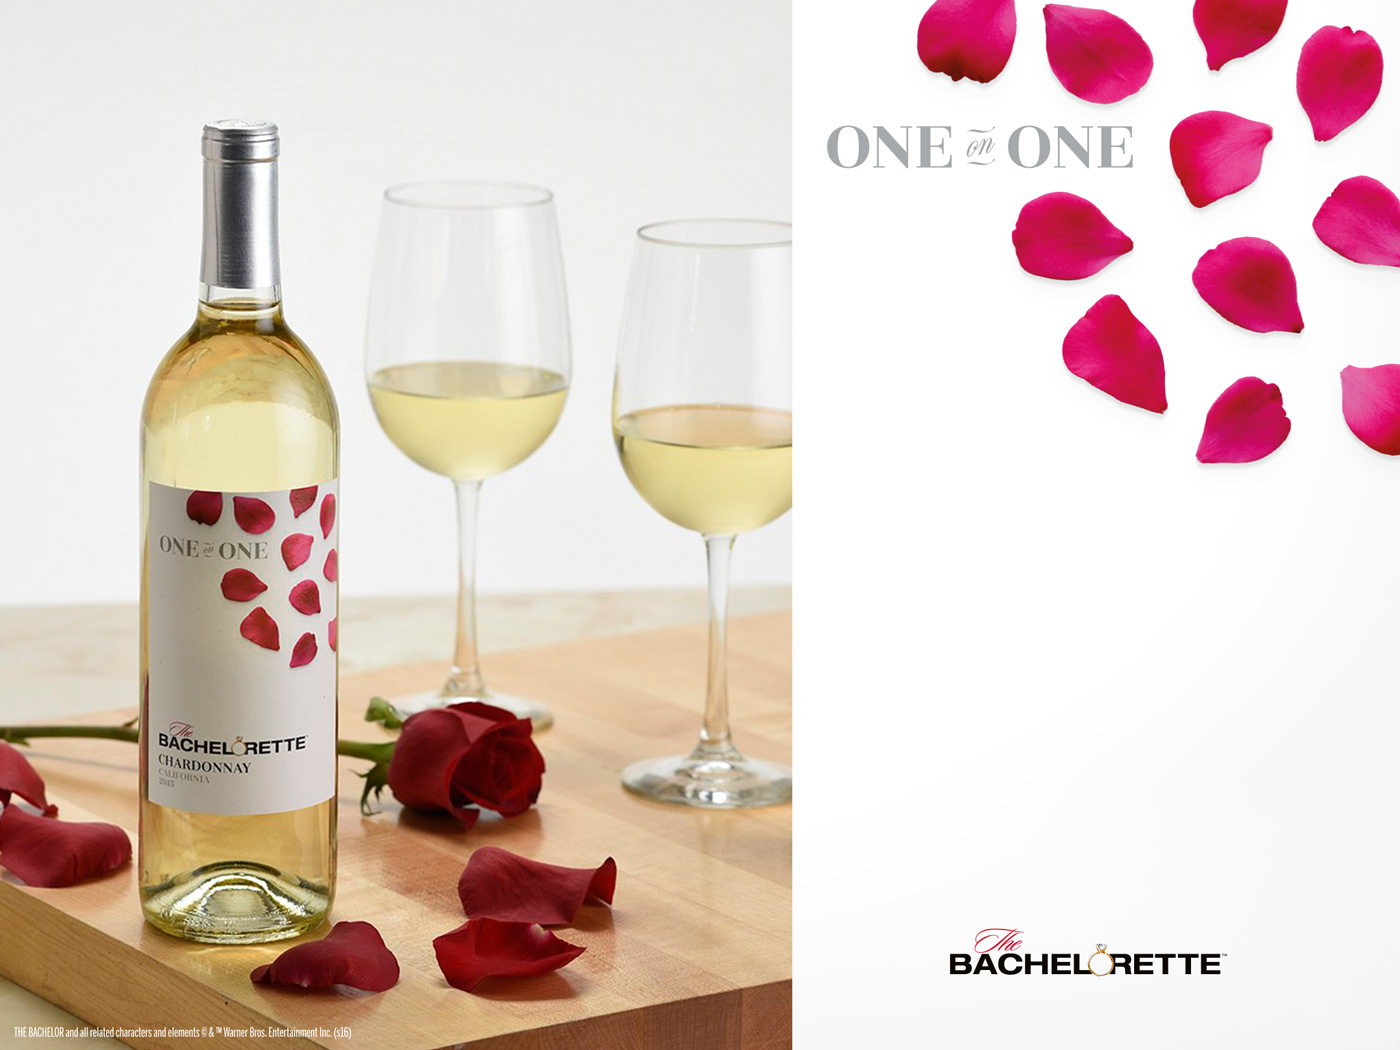 Bachelor Wines - Bachelorette One On One Lifestyle